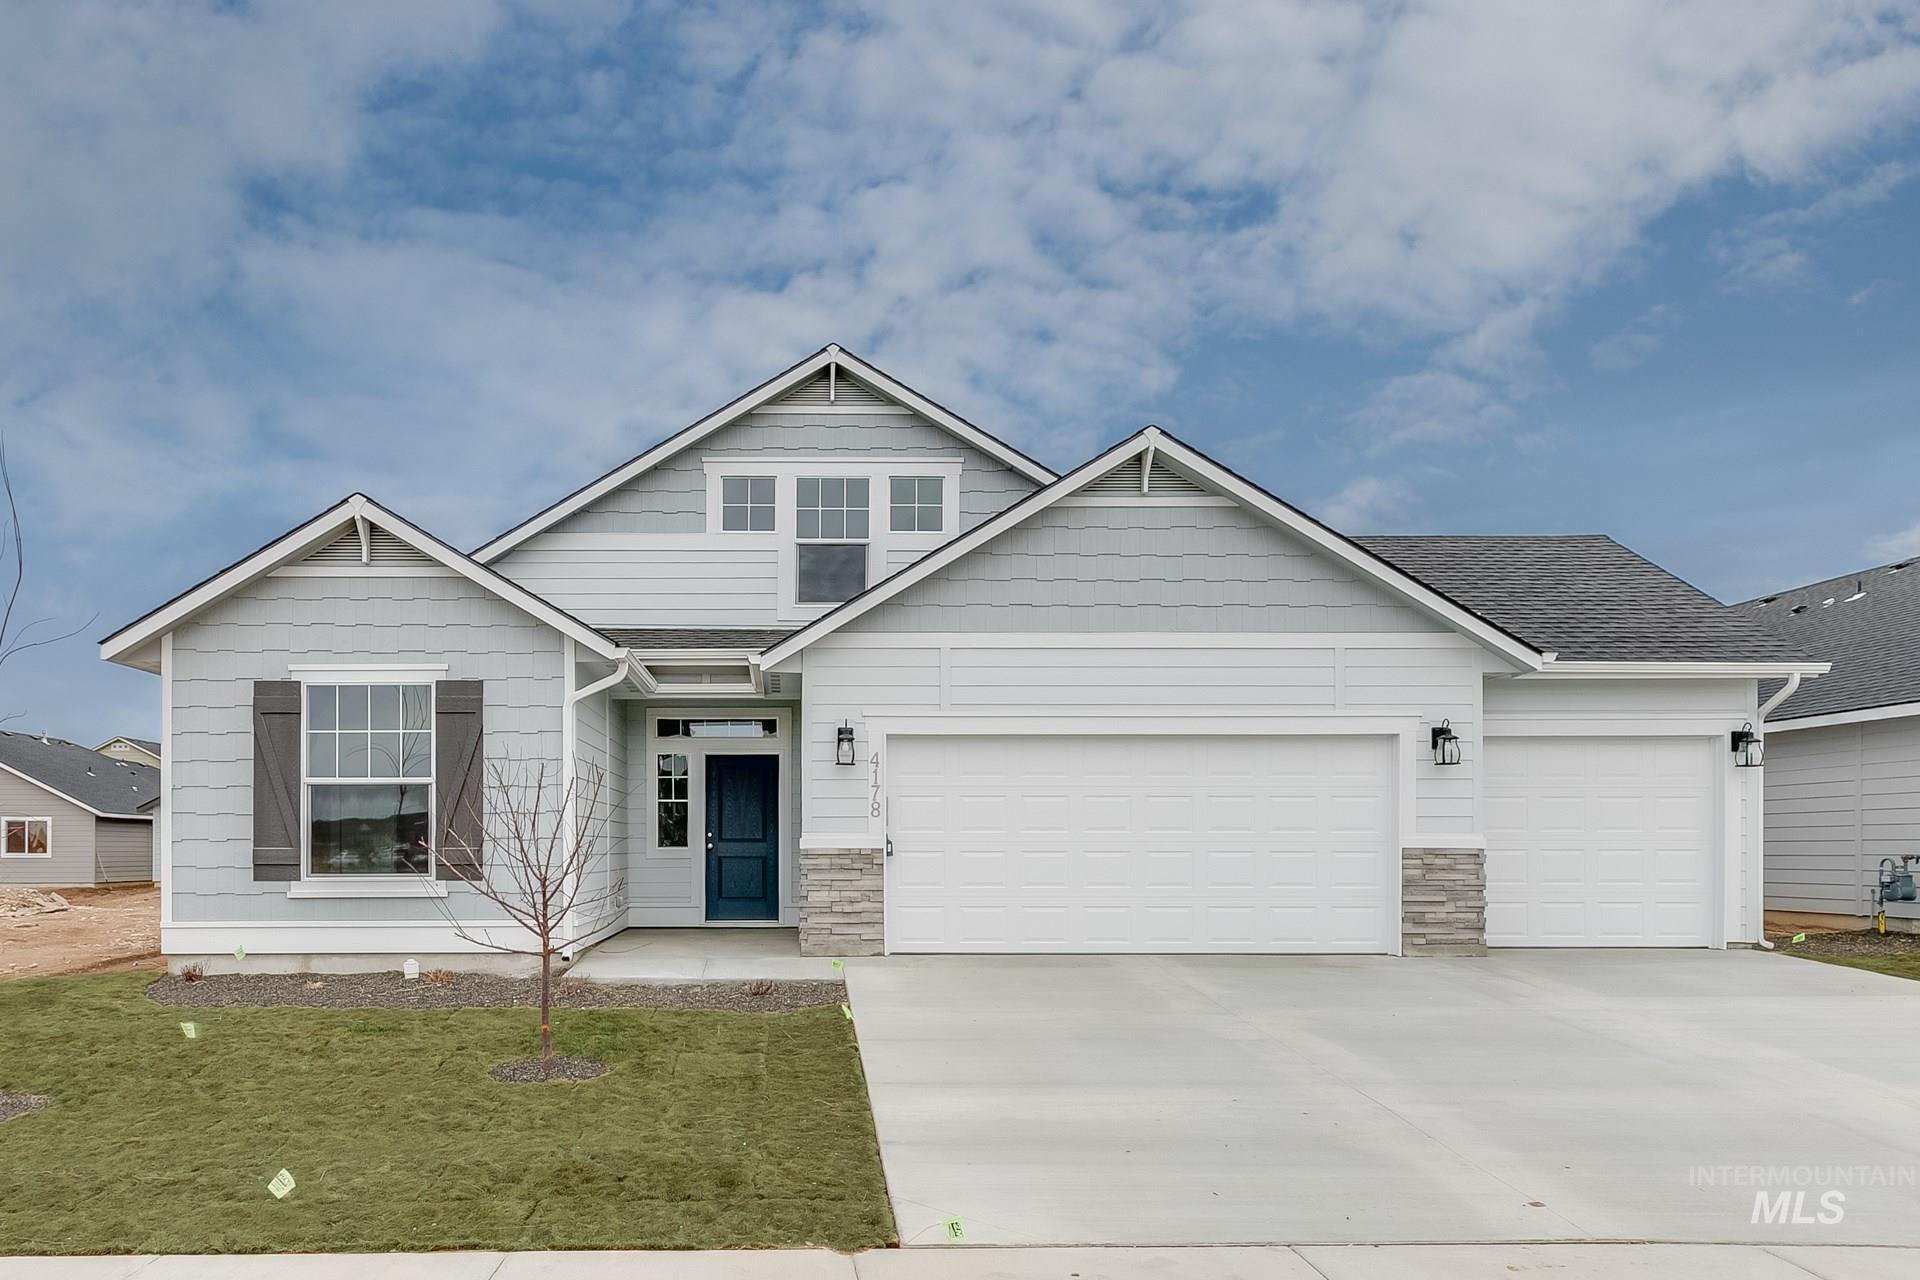 5500 N Maplestone Ave Property Photo - Meridian, ID real estate listing